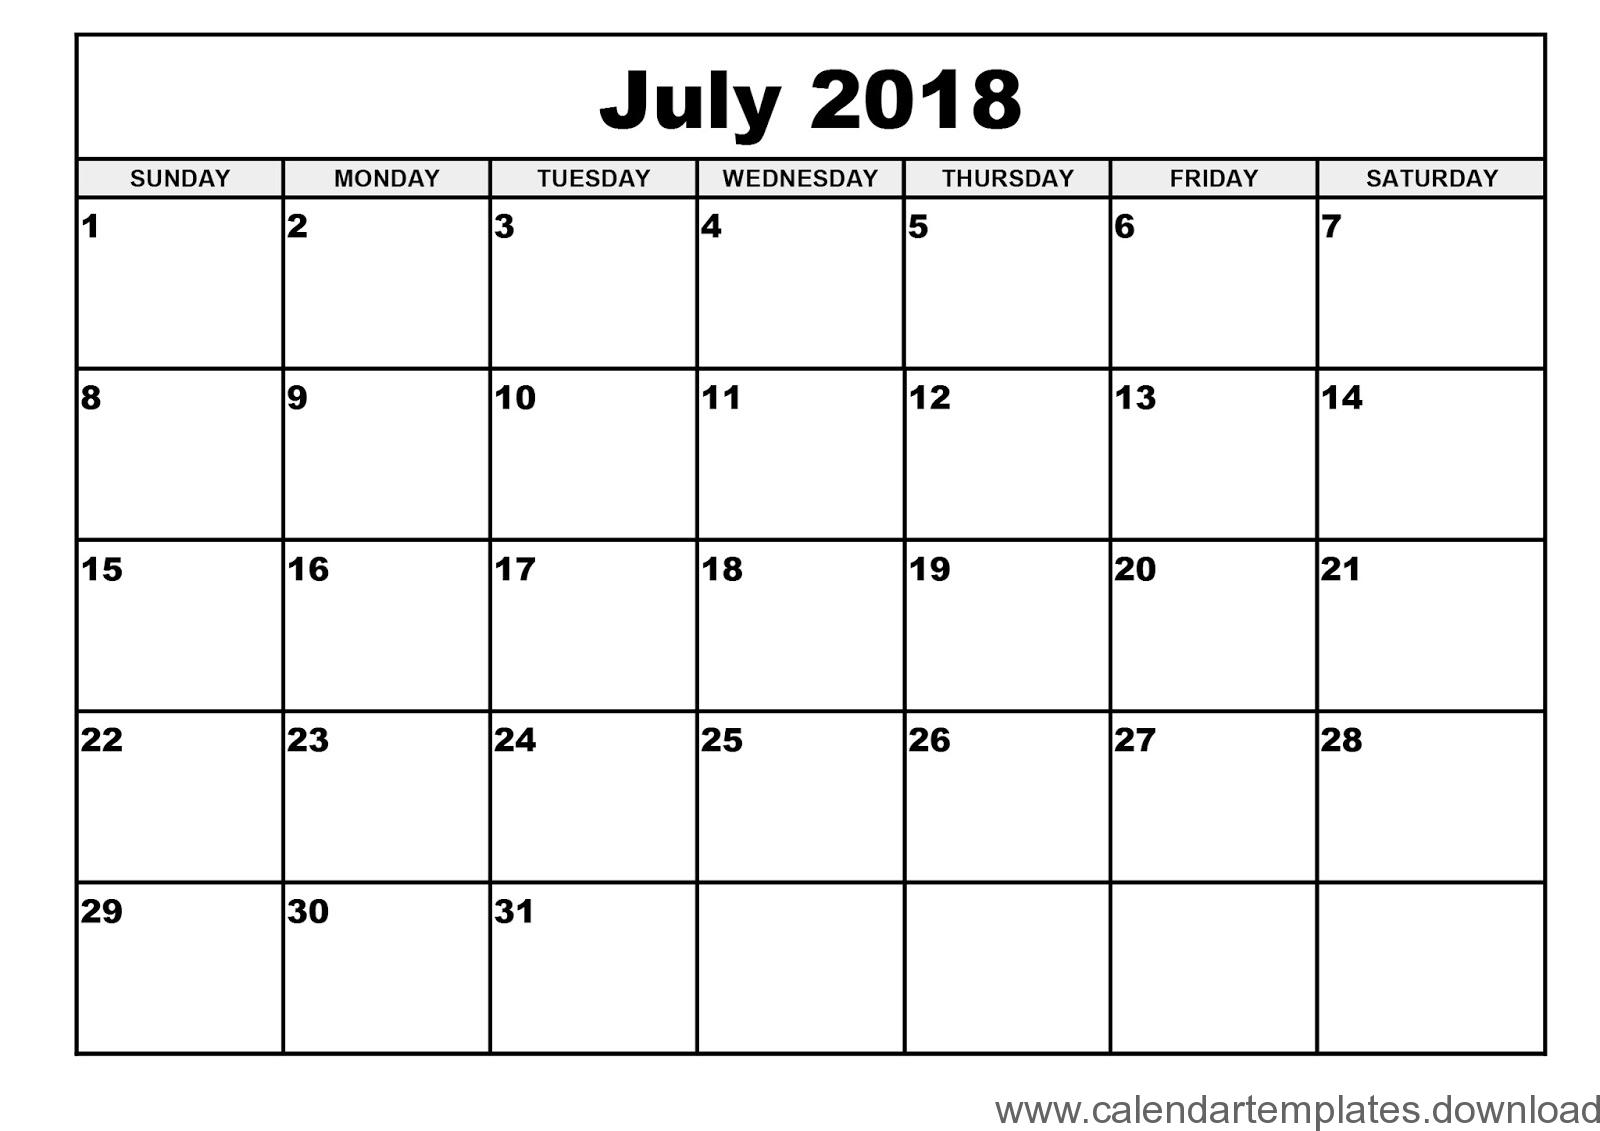 july 2018 template Ideal.vistalist.co